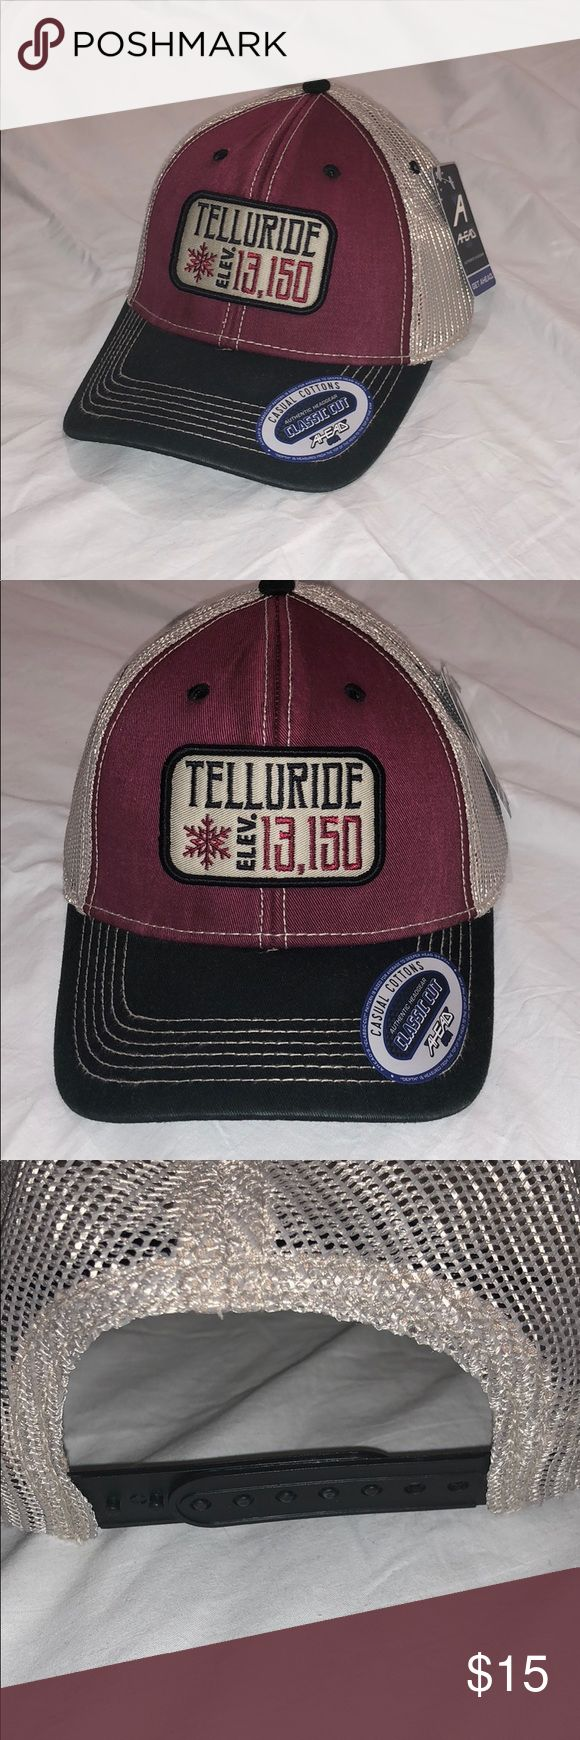 Telluride Vintage Trucker Hat Casual cotton classic cut. Classic cut pattern is sized for average to deeper head death. Worn out vintage look and feel. Ahead Accessories Hats